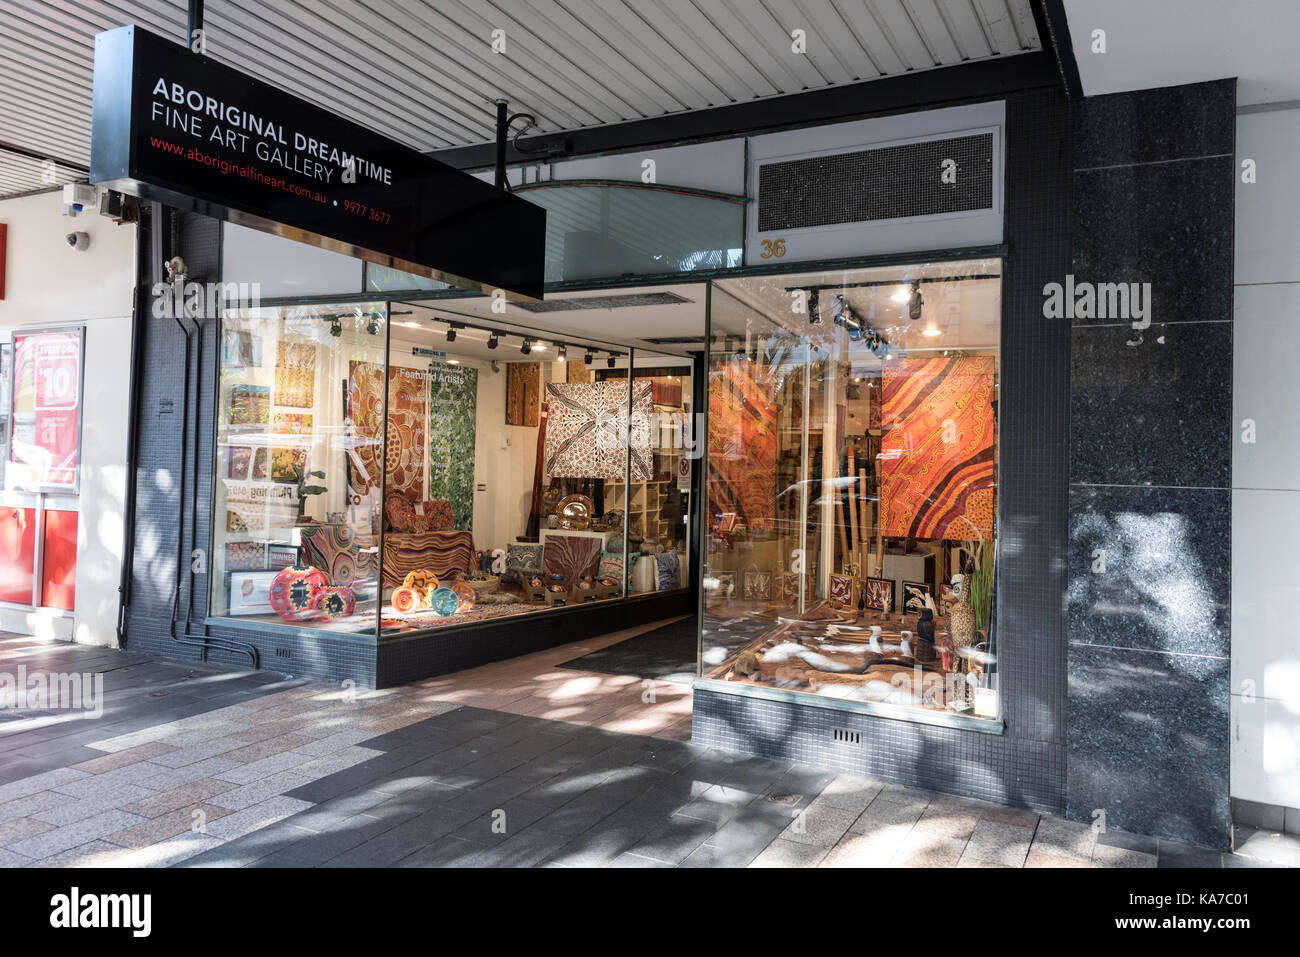 An Aboriginal art store in The Corso, a pedestrian and main shopping street in  Manly in New South Wales, Australia. - Stock Image